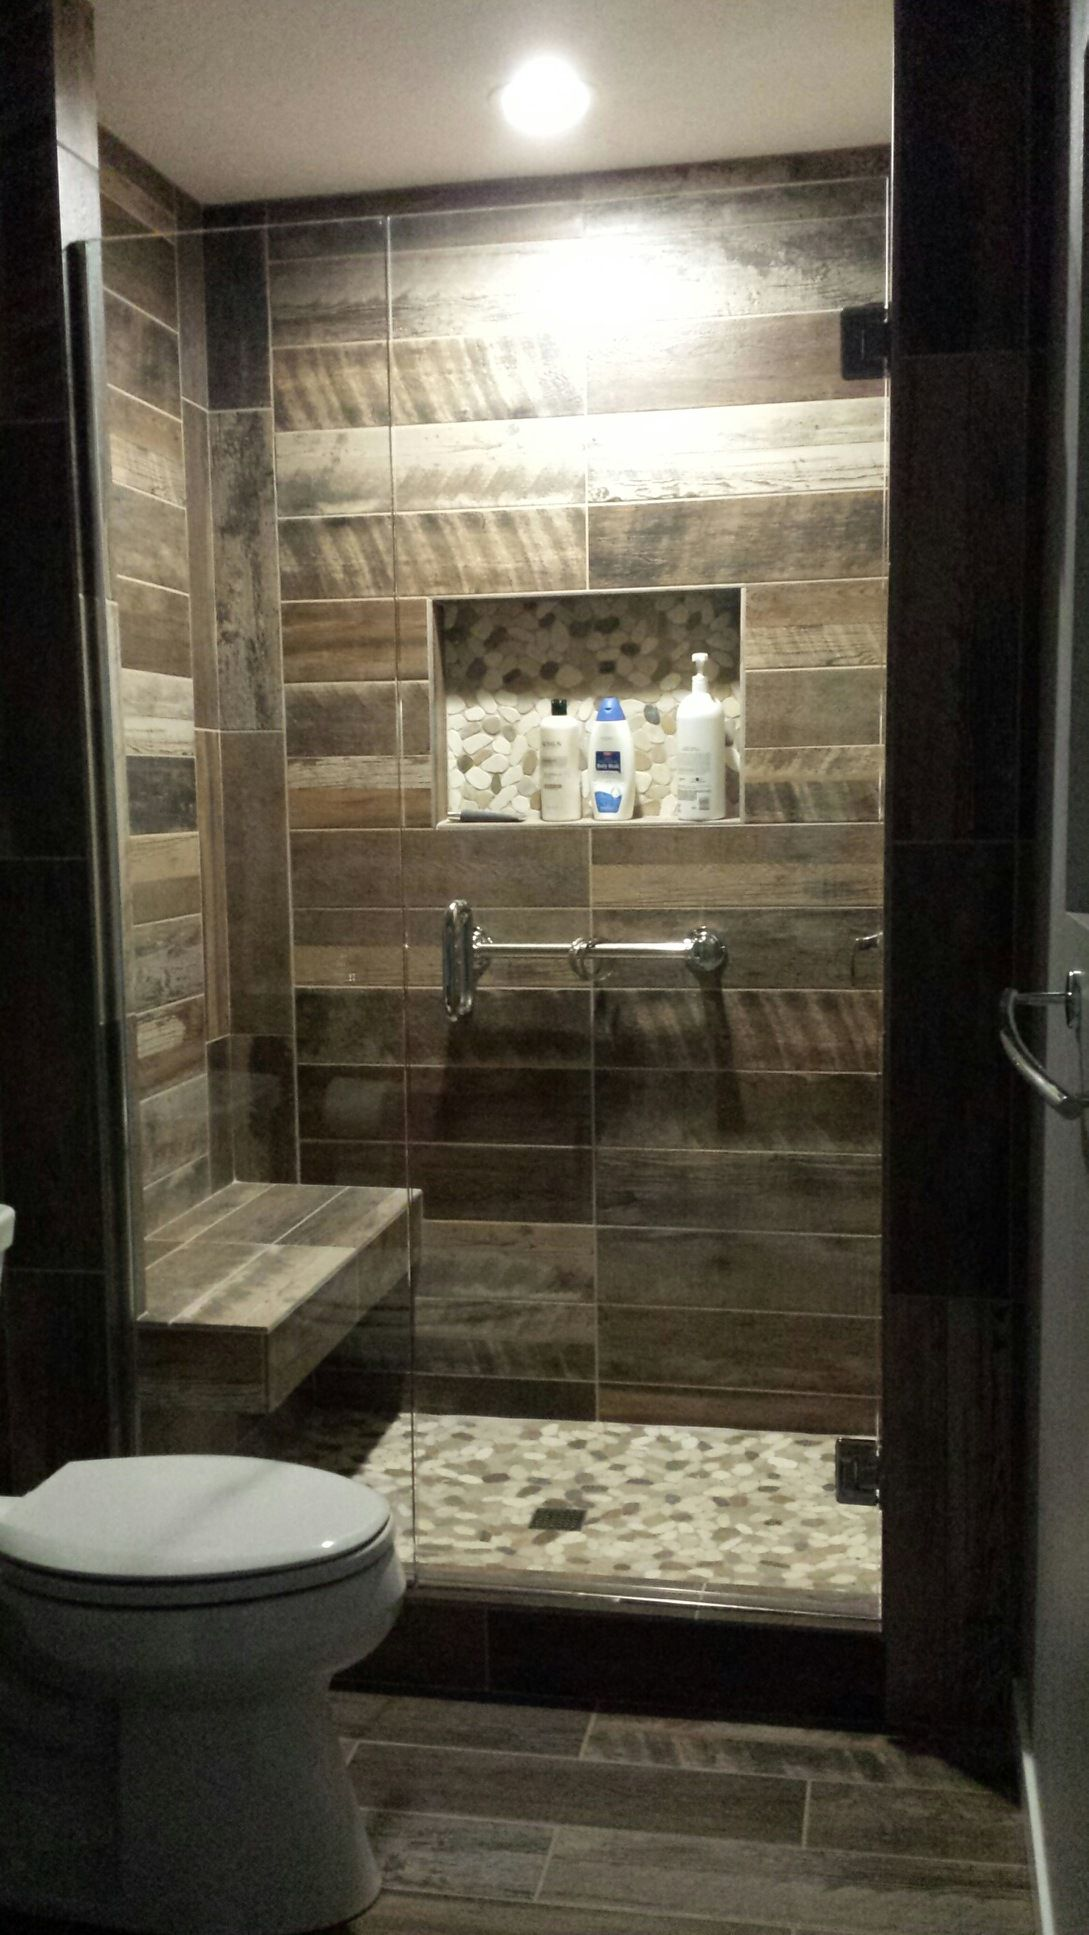 Merveilleux Kennewick, WA Bathroom Remodel Custom Walk In Shower With Wood Plank Look  Tile Walls And Natural Stone Floor. Warwick Design, LLC.